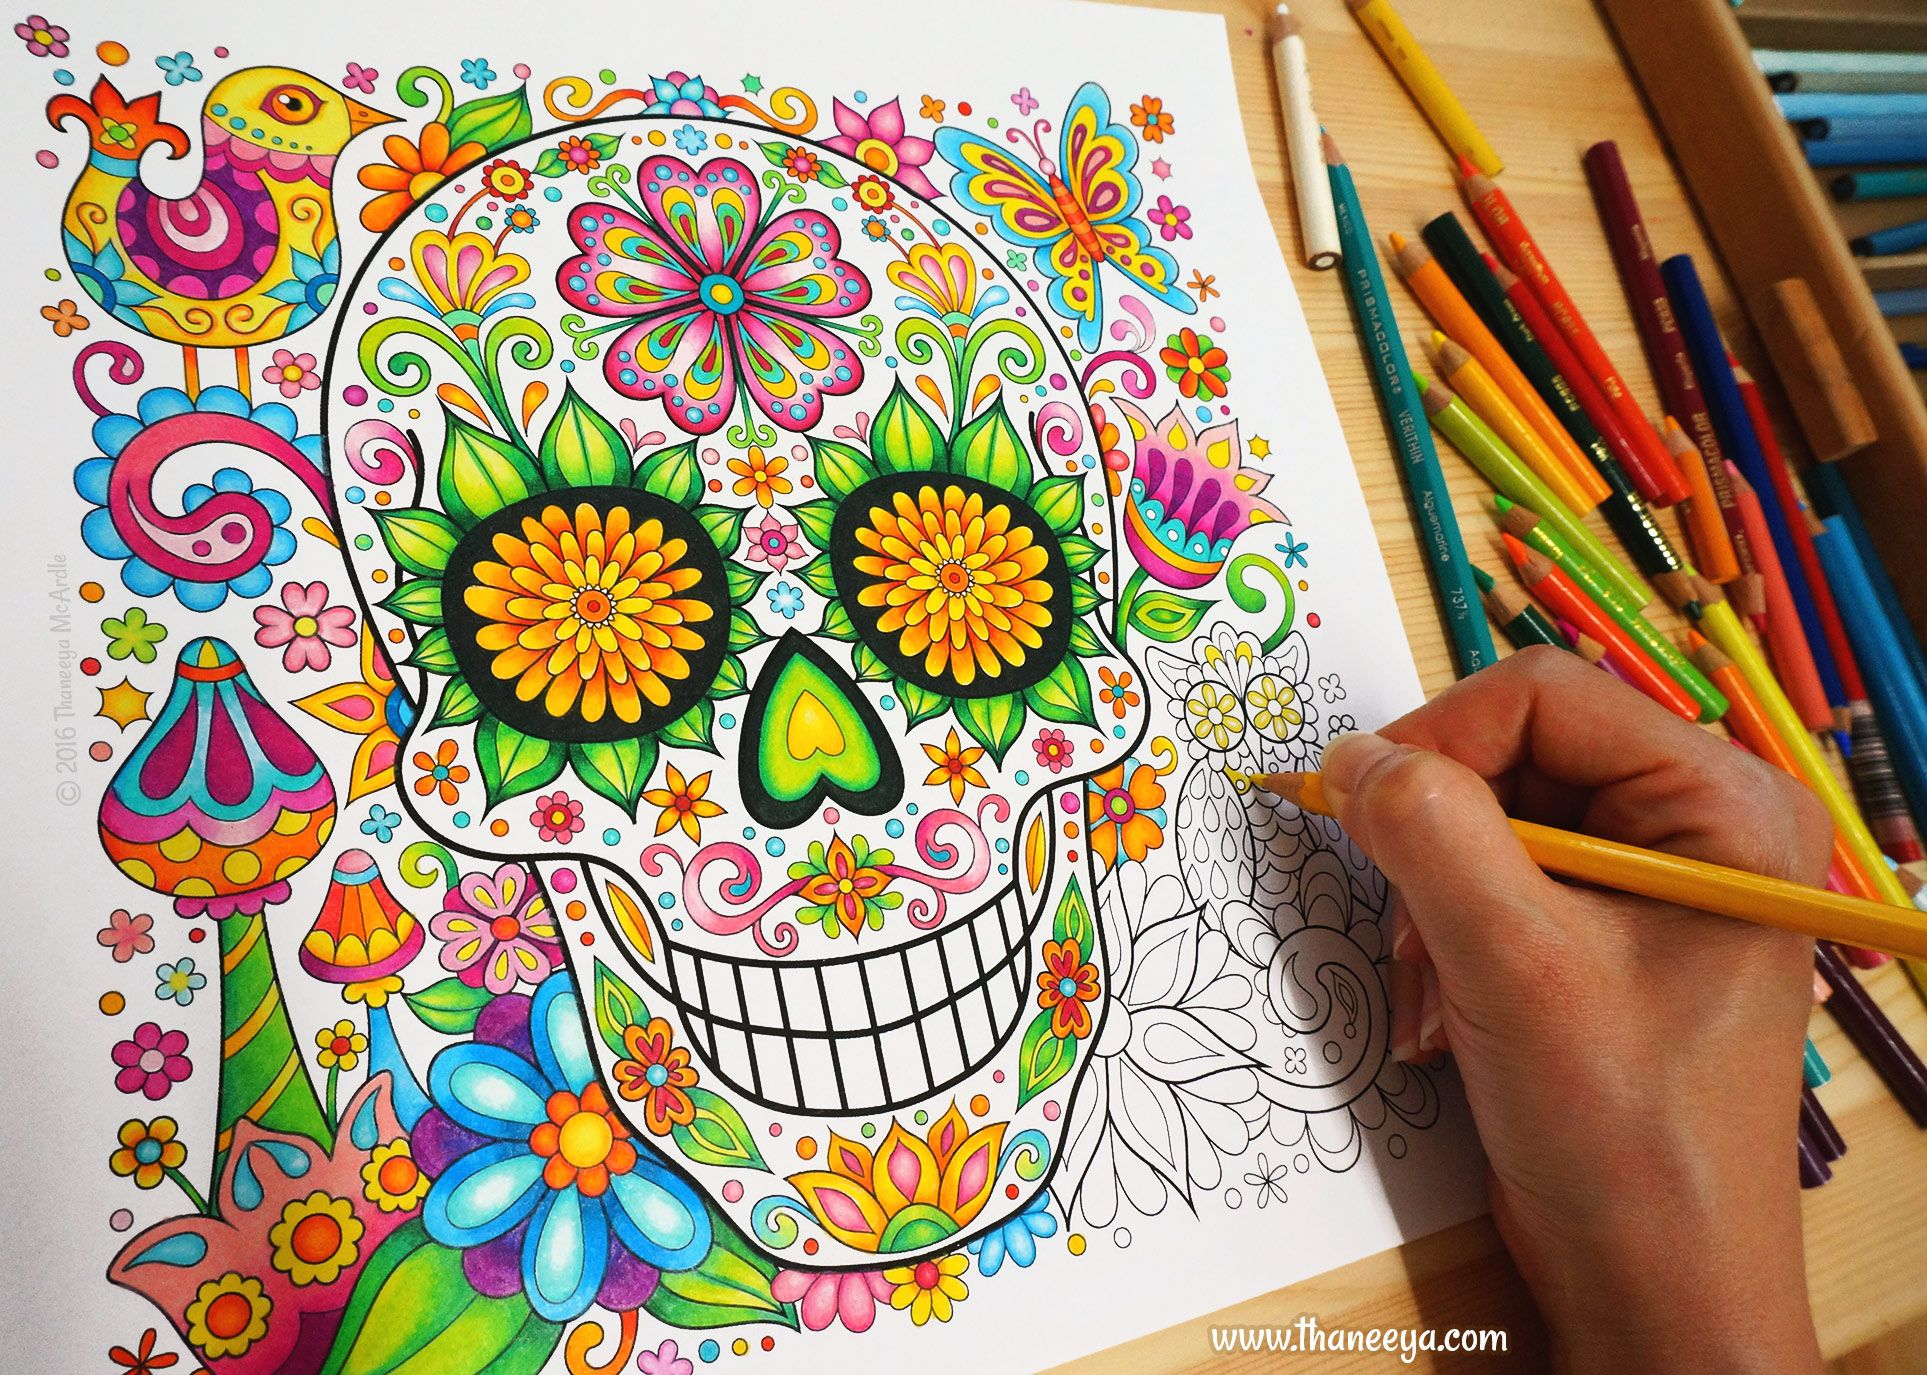 Free spirit coloring book by thaneeya mcardle coloring books by - Sugar Skull From Thaneeya Mcardle S Sugar Skulls Coloring Book Https Www Amazon